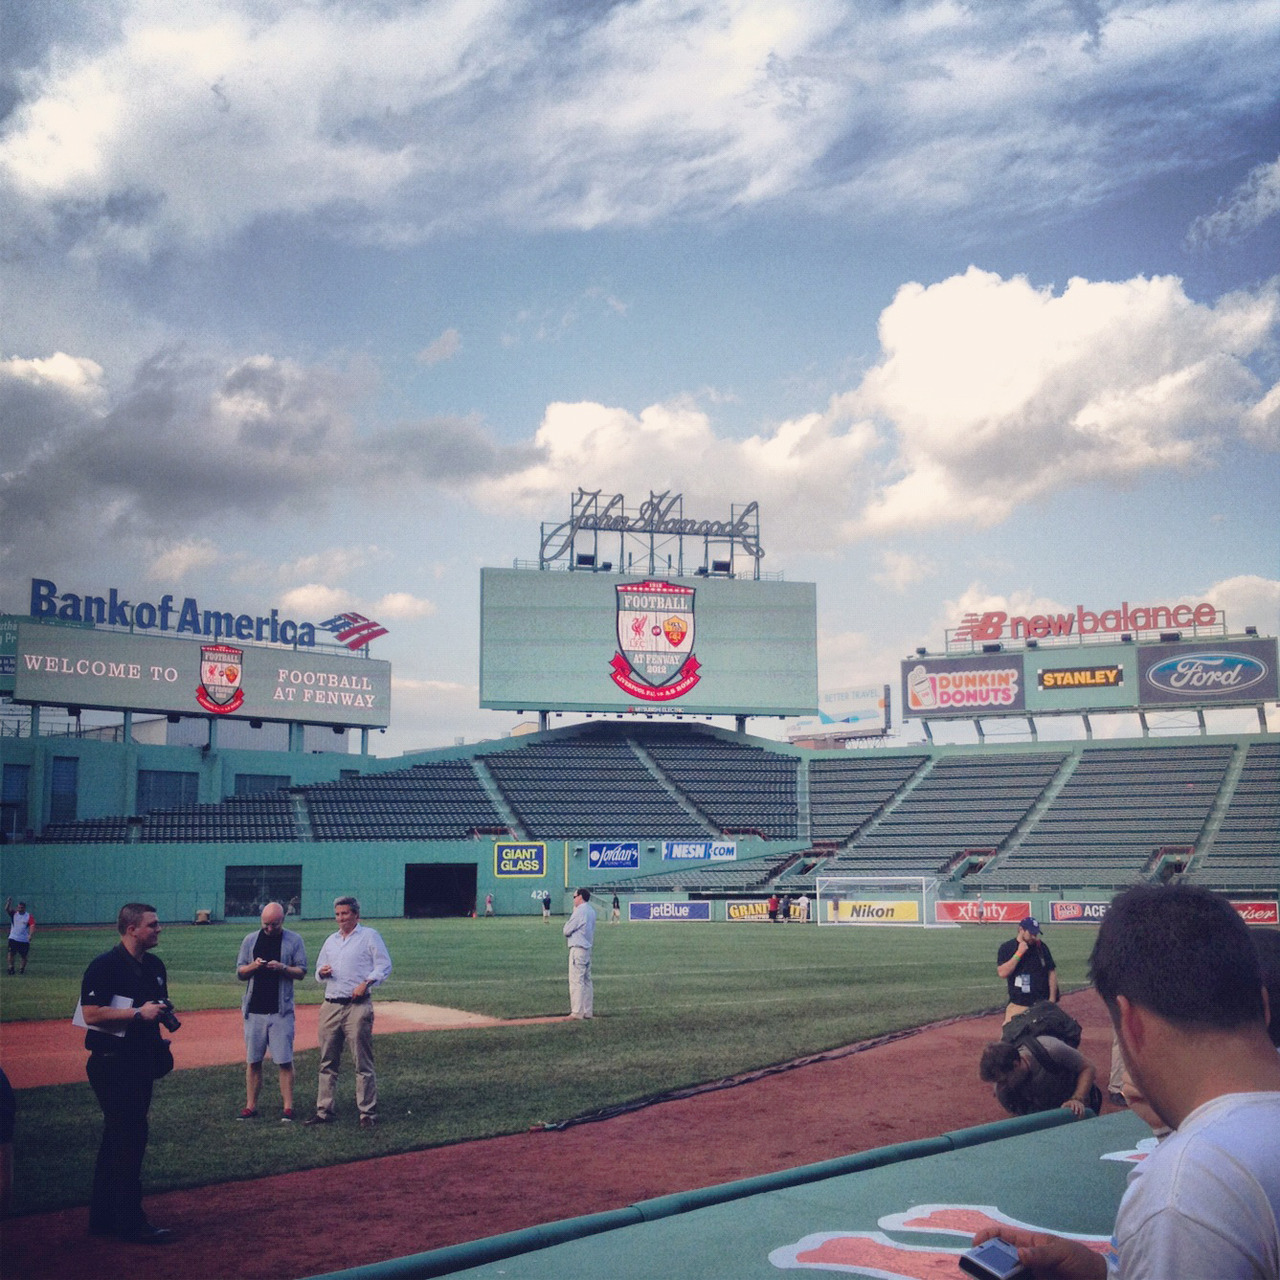 Futbol at Fenway